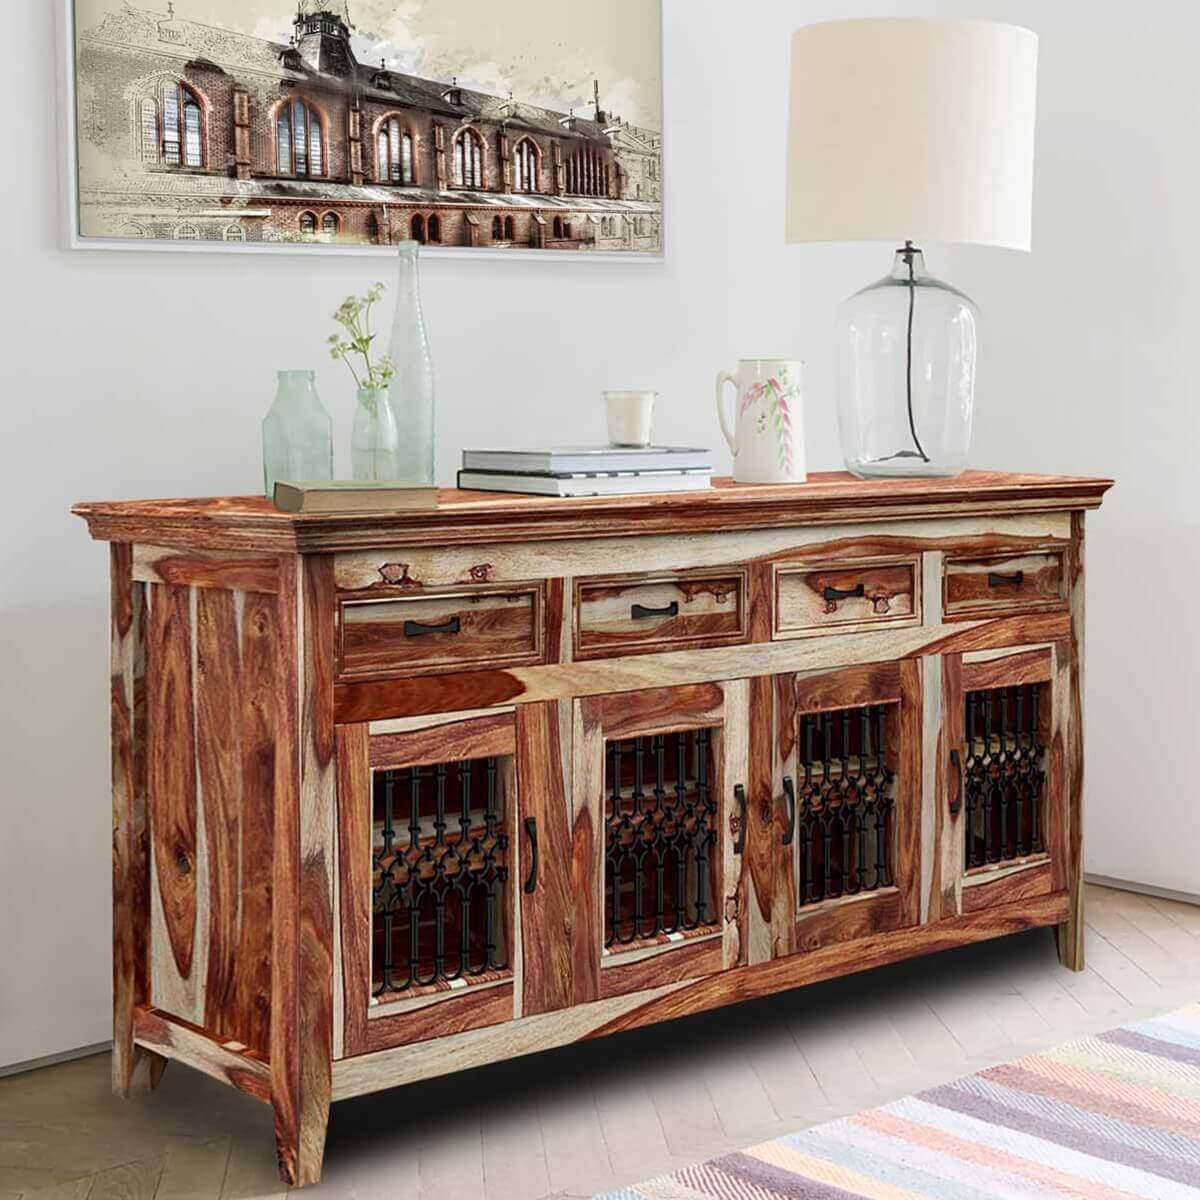 peoria modern rustic solid wood 4 door 4 drawer buffet. Black Bedroom Furniture Sets. Home Design Ideas